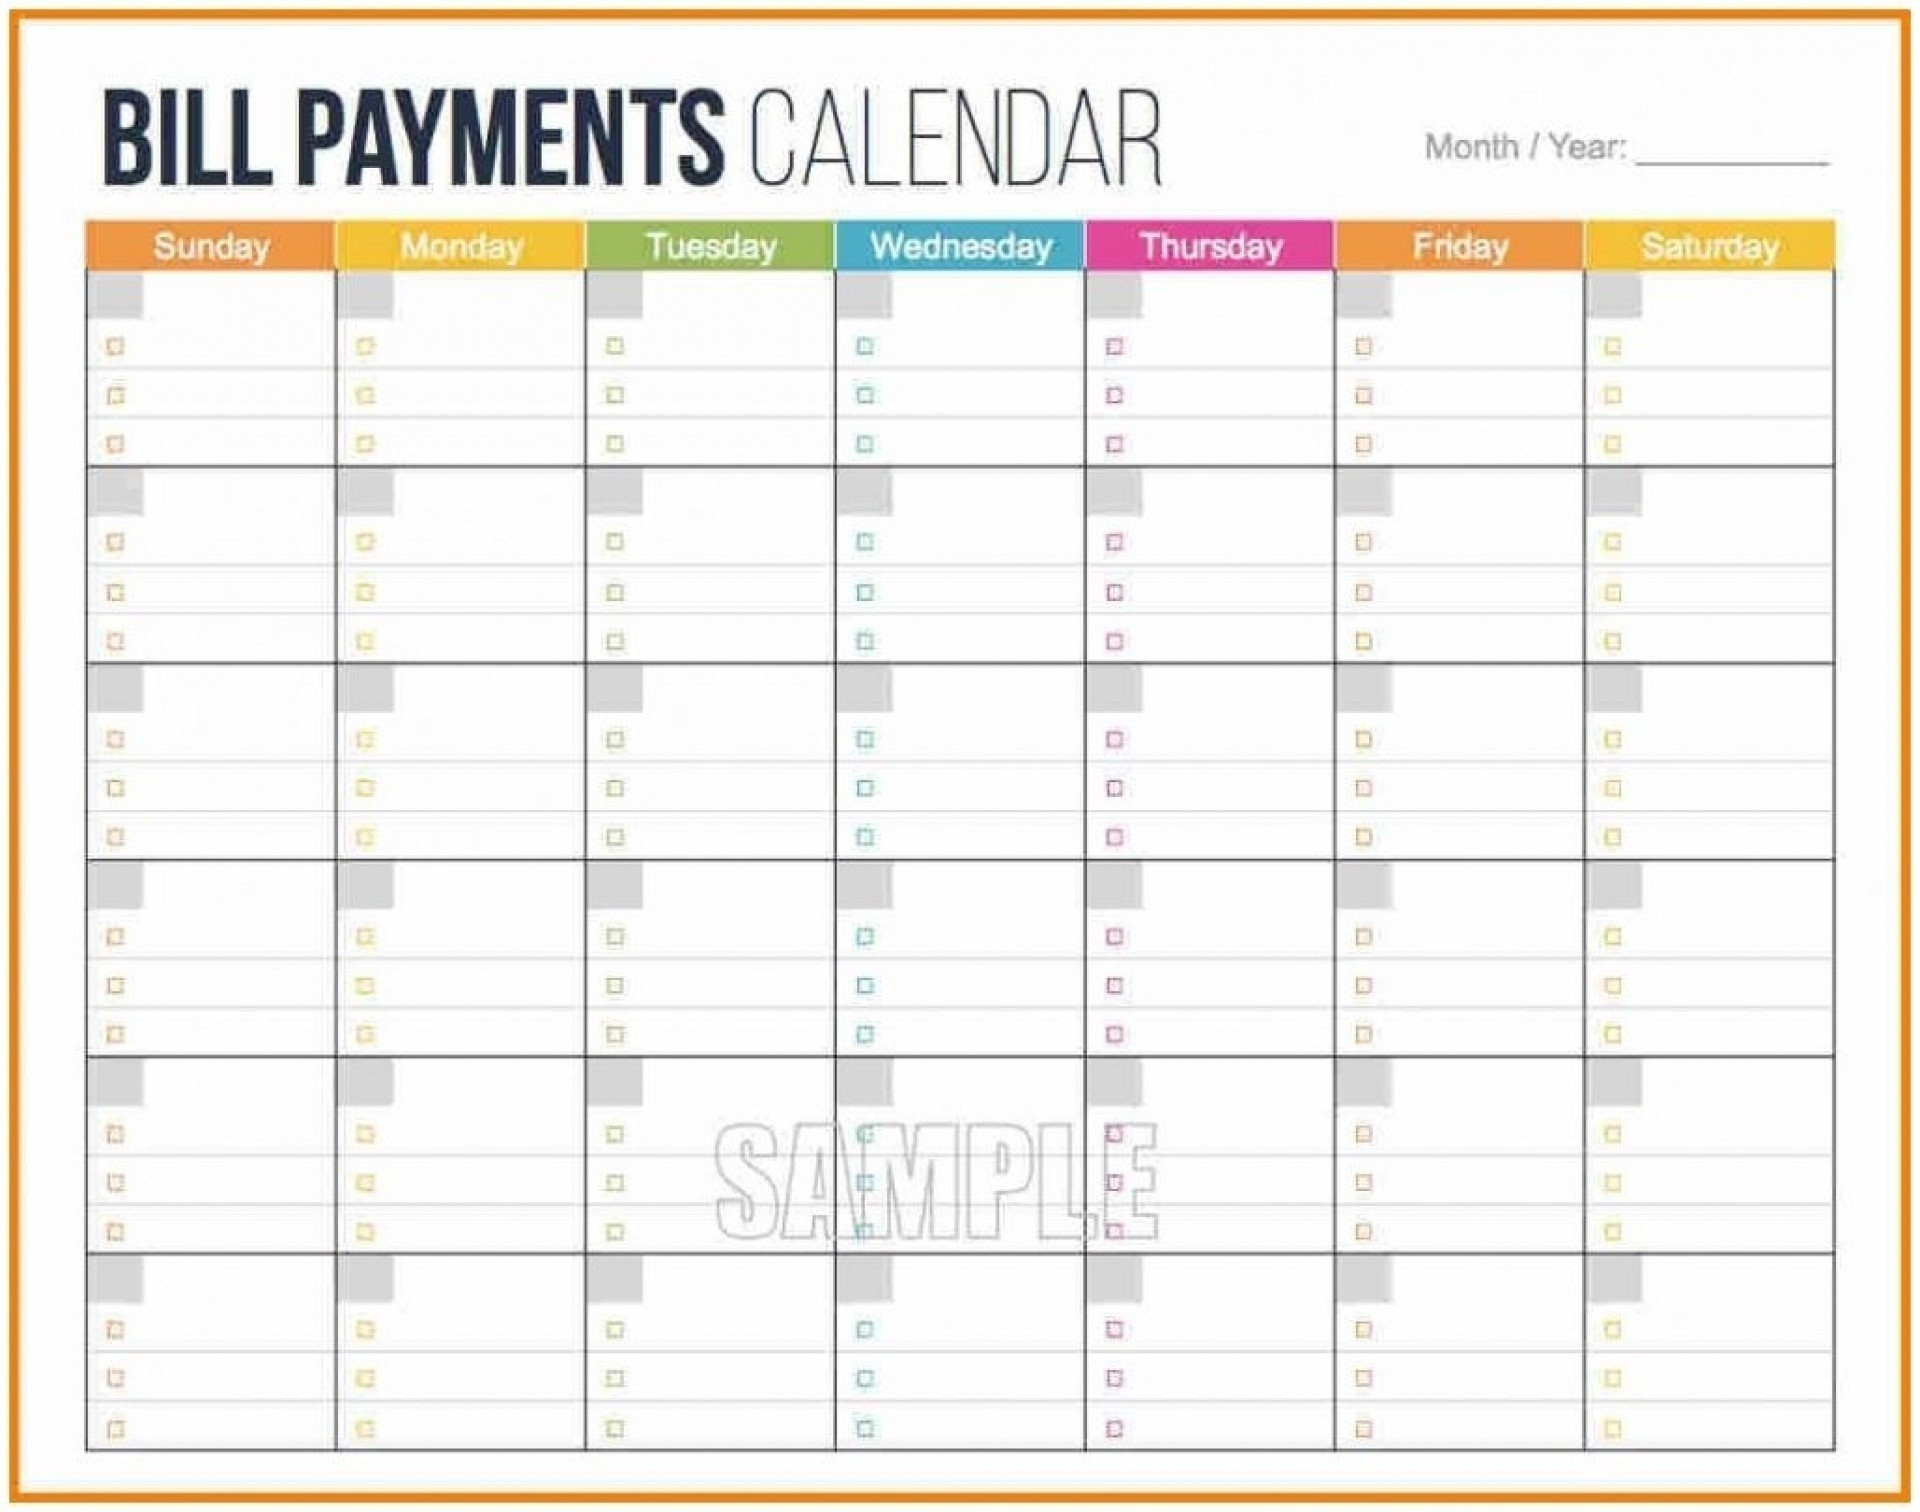 Printable Bill Calendar 2020 Monthly | Calendar Template  Printable Bill Pay Calendar 2020